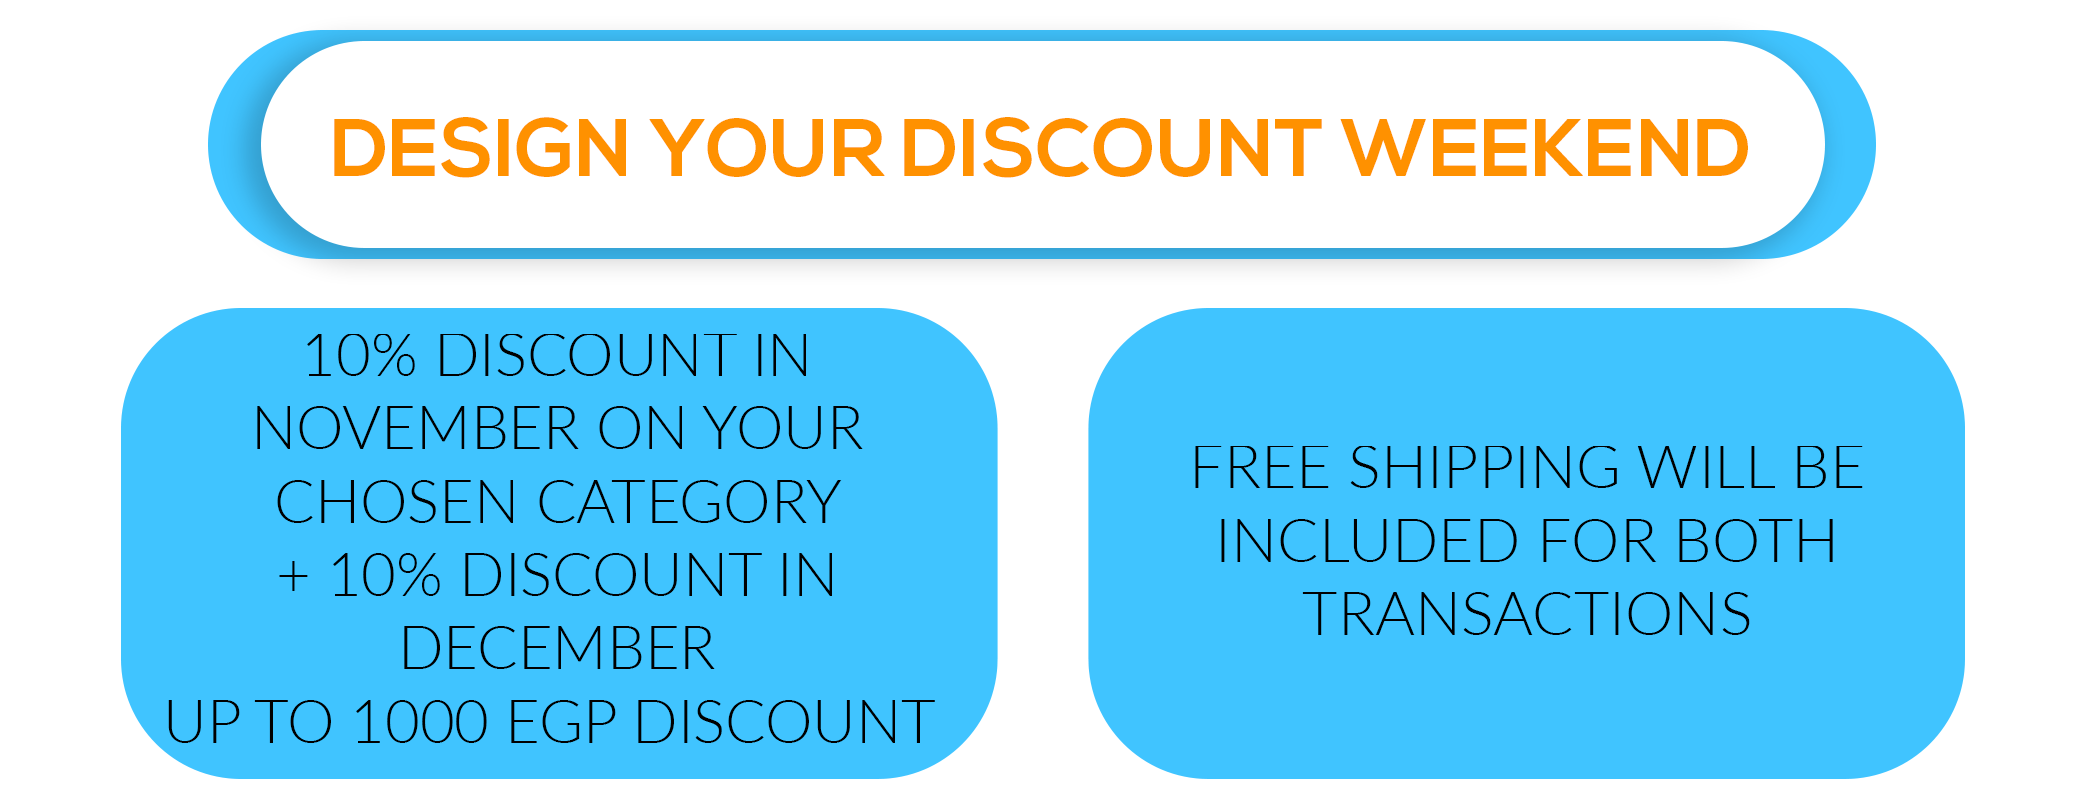 10% Discount for november + 10% Discount for december